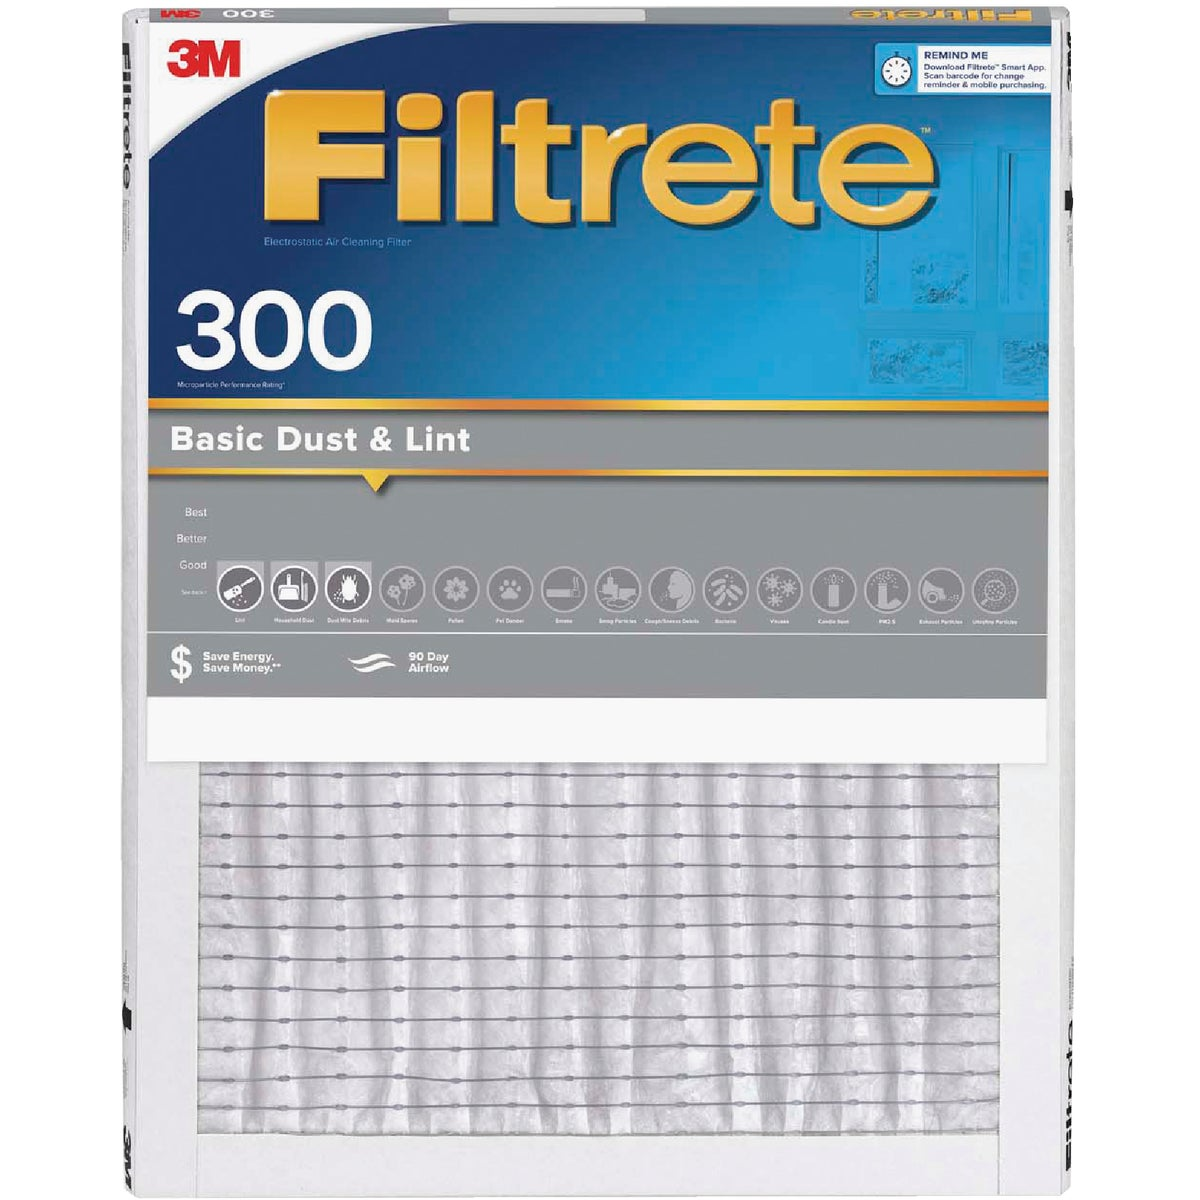 3M Filtrete 16 In. x 25 In. x 1 In. Dust Reduction 300 MPR Furnace Filter